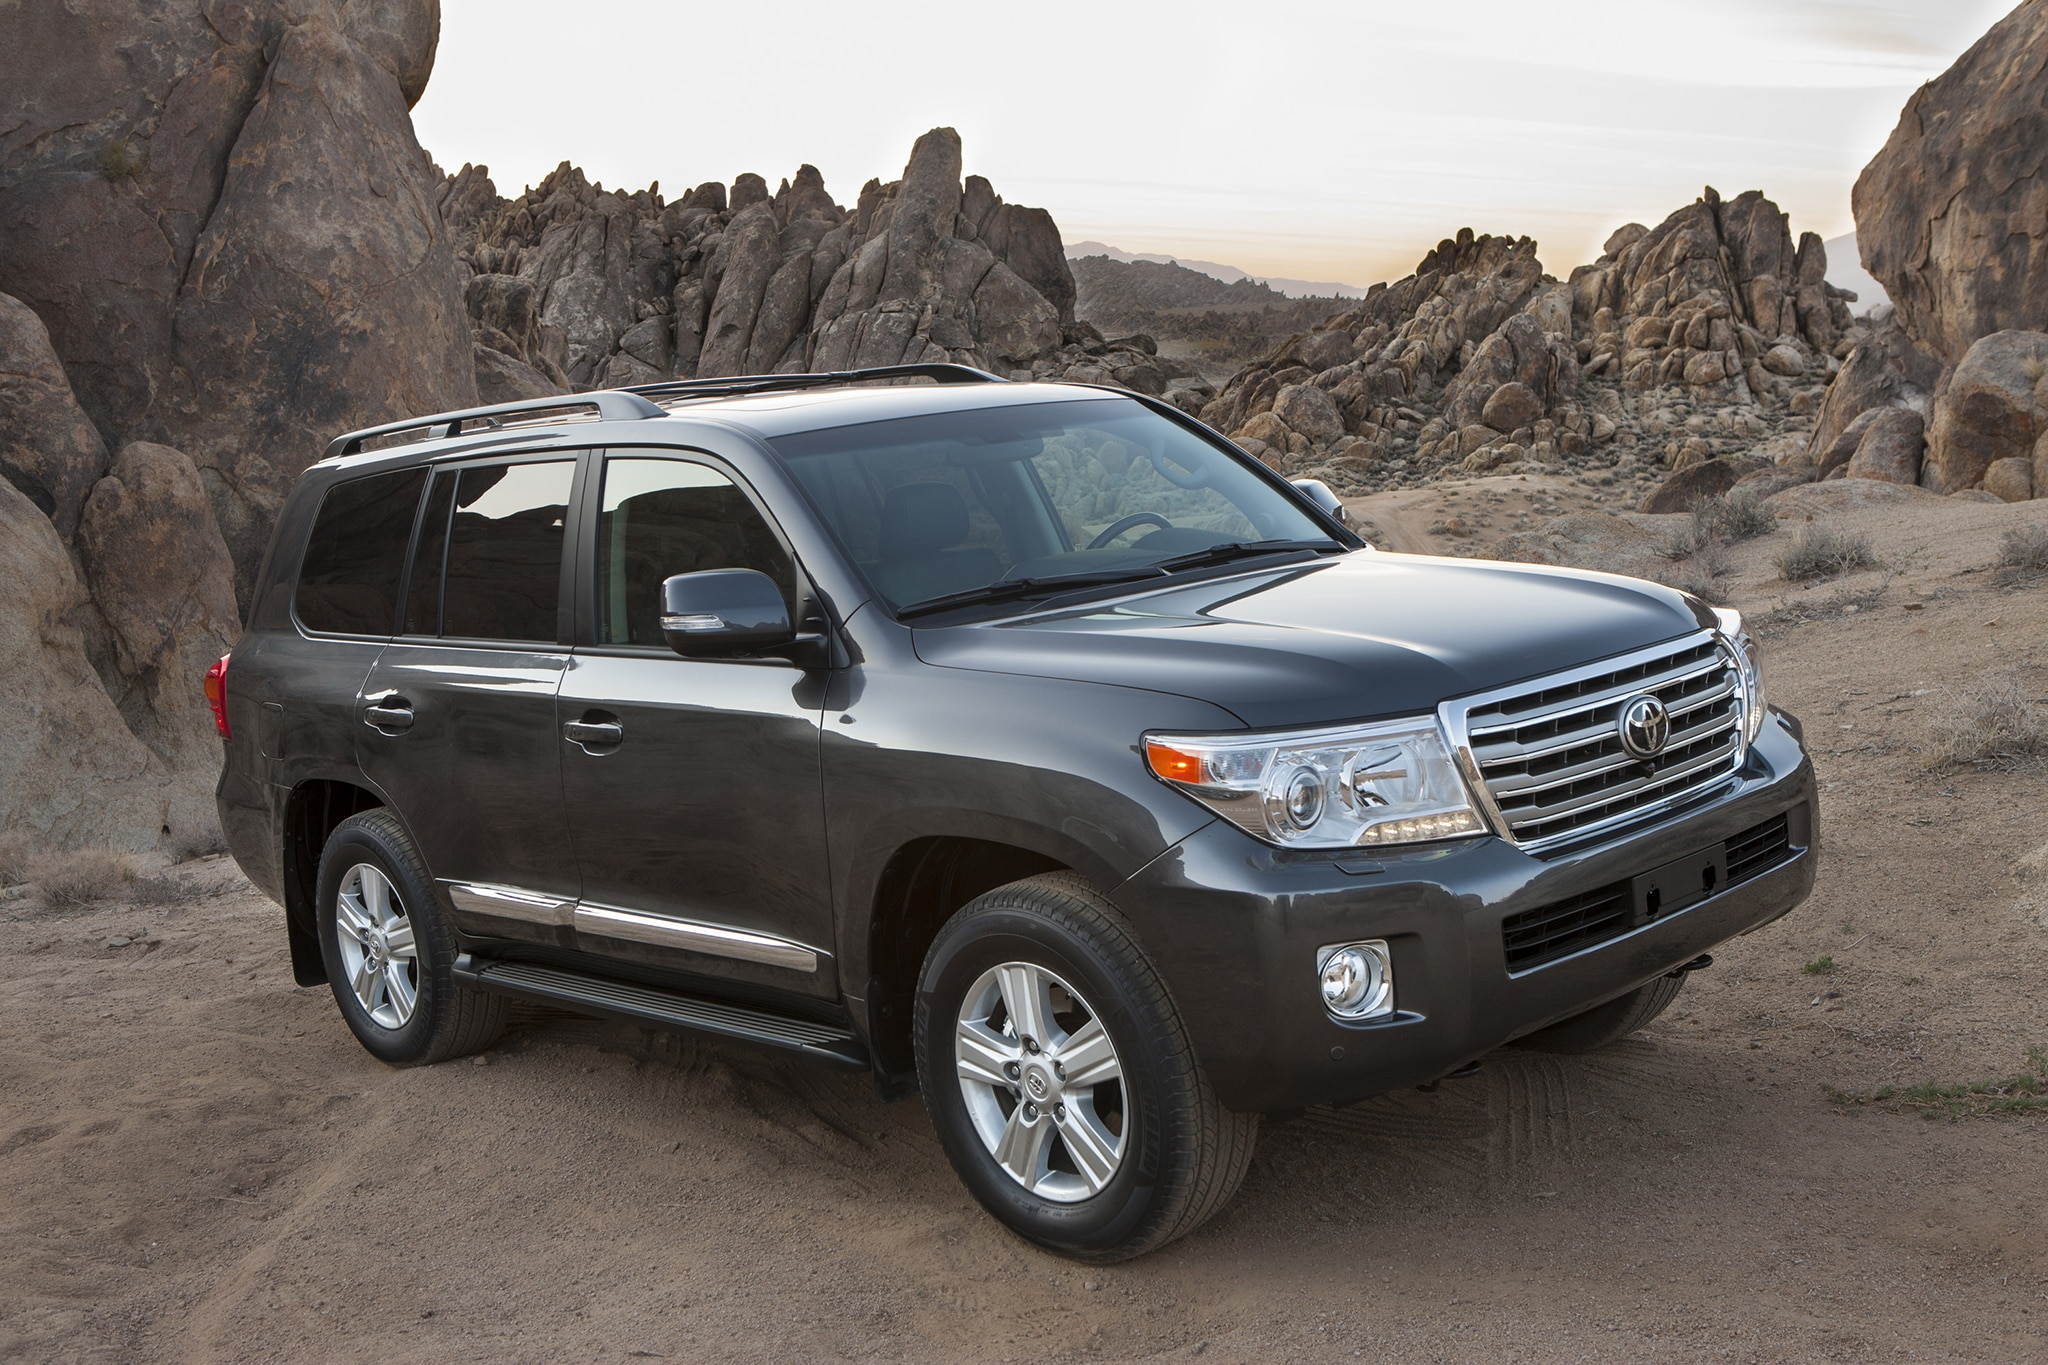 http://st.automobilemag.com/uploads/sites/10/2015/09/2013-Toyota-Land-Cruiser-front-passengers-three-quarters.jpg